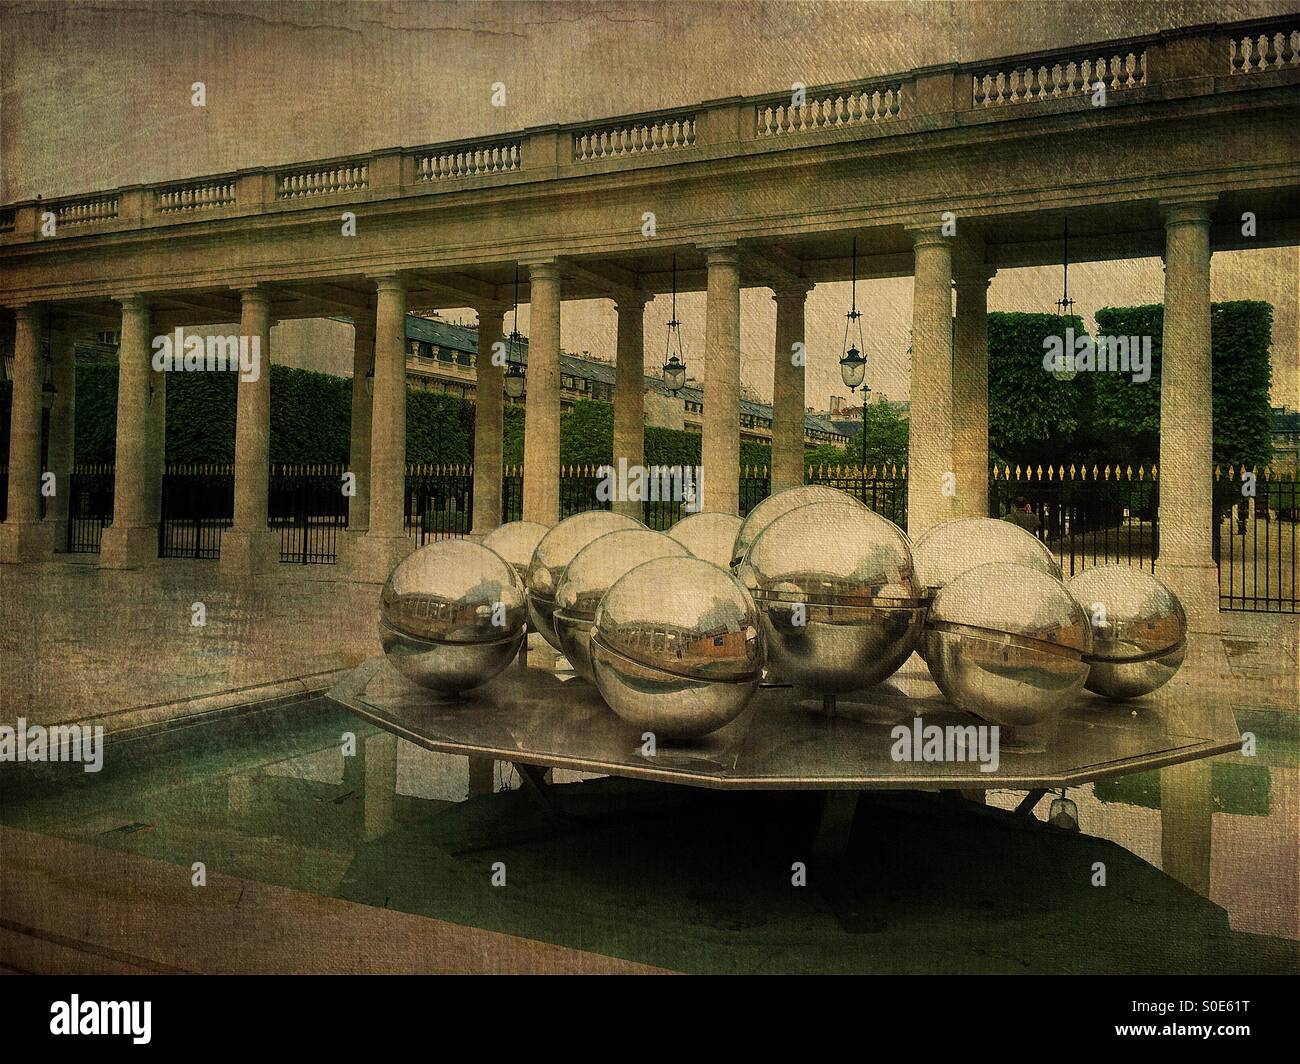 View of Fontaines installation by Pol Bury at the Orleans Gallery of Place du Palais-Royal in Paris, France. The - Stock Image